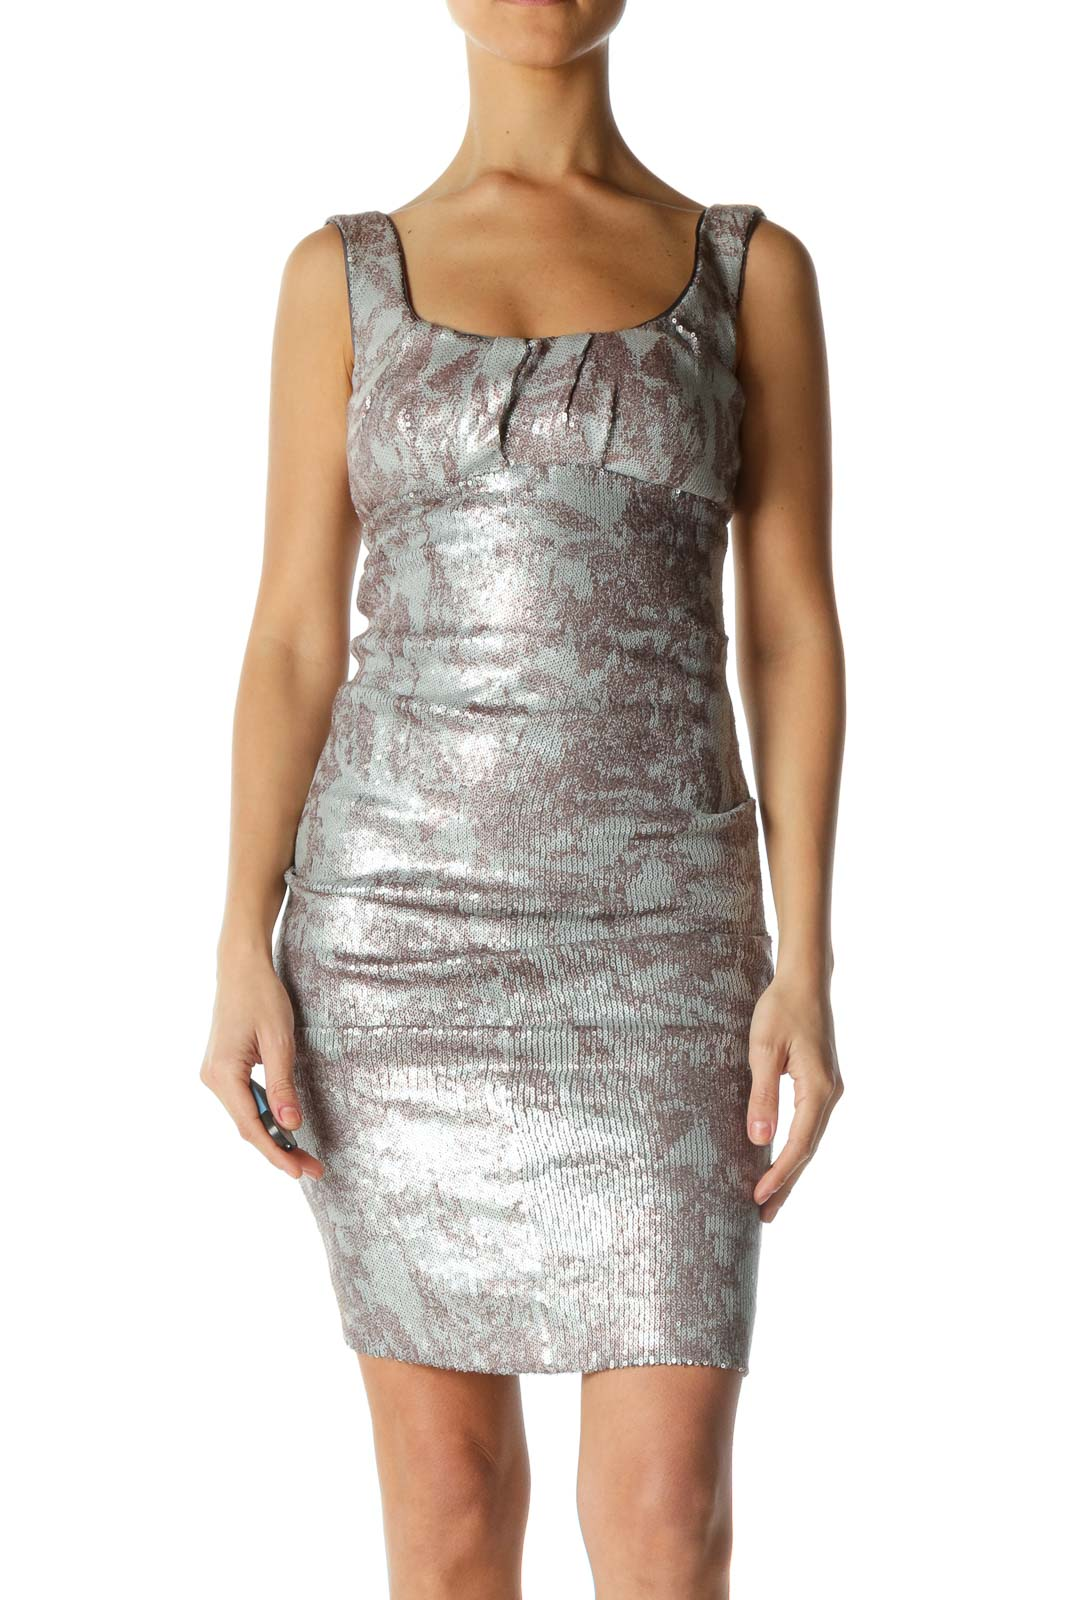 Brown and Silver Sequined Dress Front